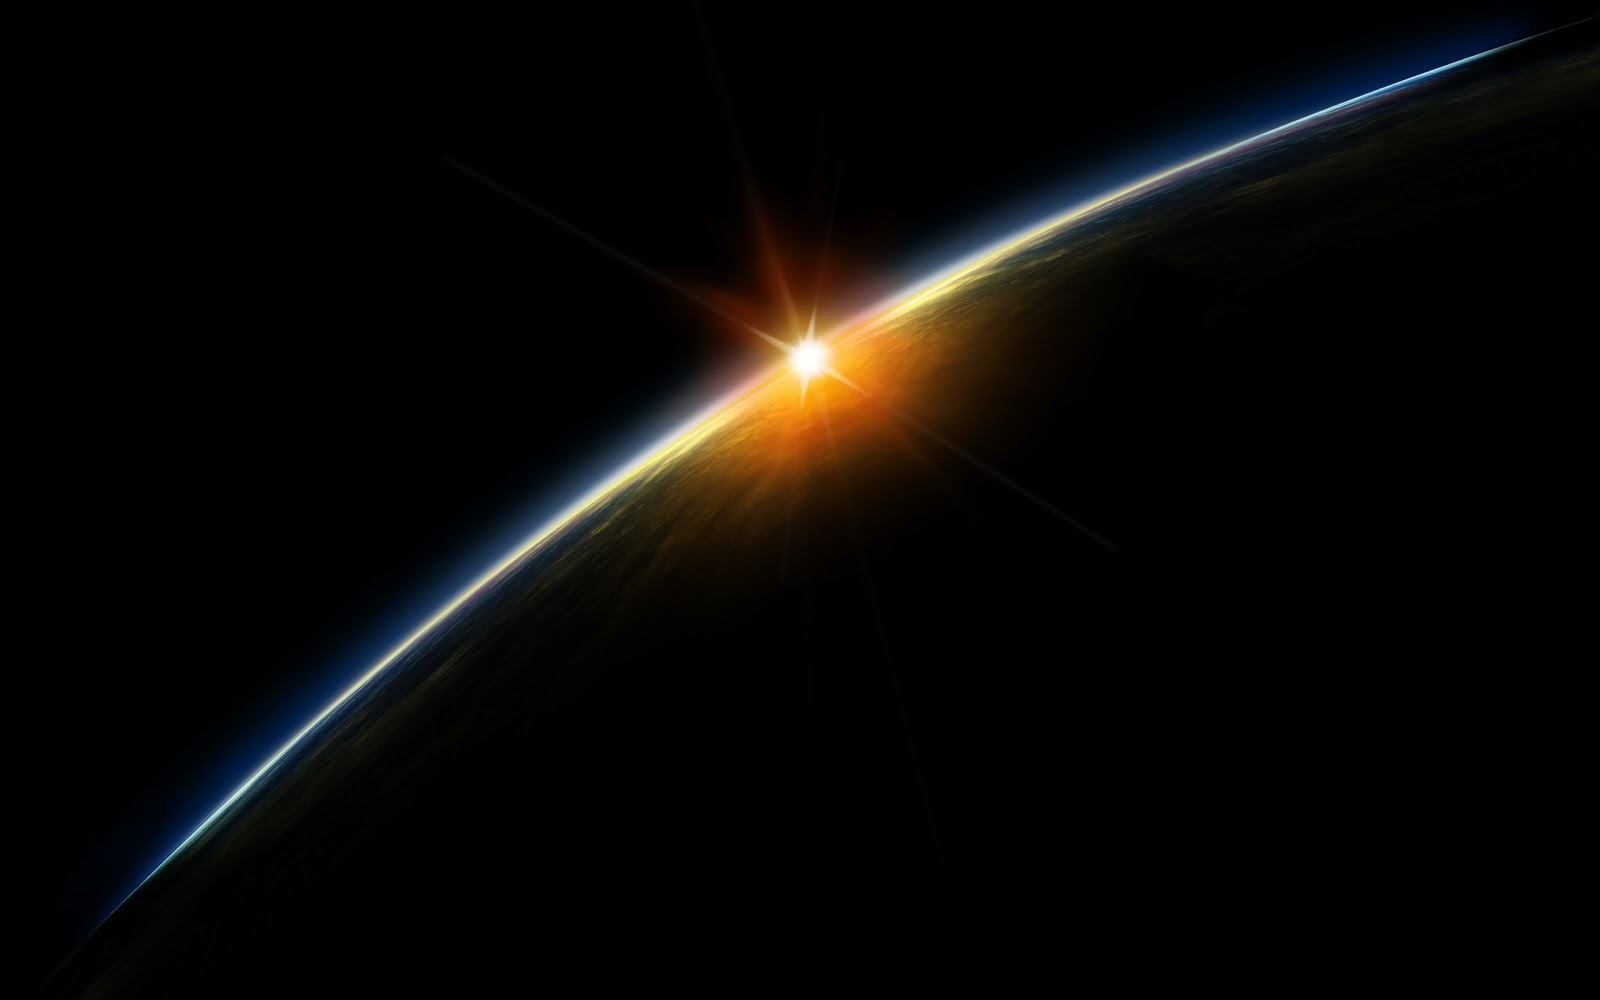 http://1.bp.blogspot.com/-2TM_KQfycMs/UWAQPCtYIdI/AAAAAAAAAaY/2uKmVYZ5IFg/s1600/space-sunset-over-earth-desktop-wallpaper-hd.jpg